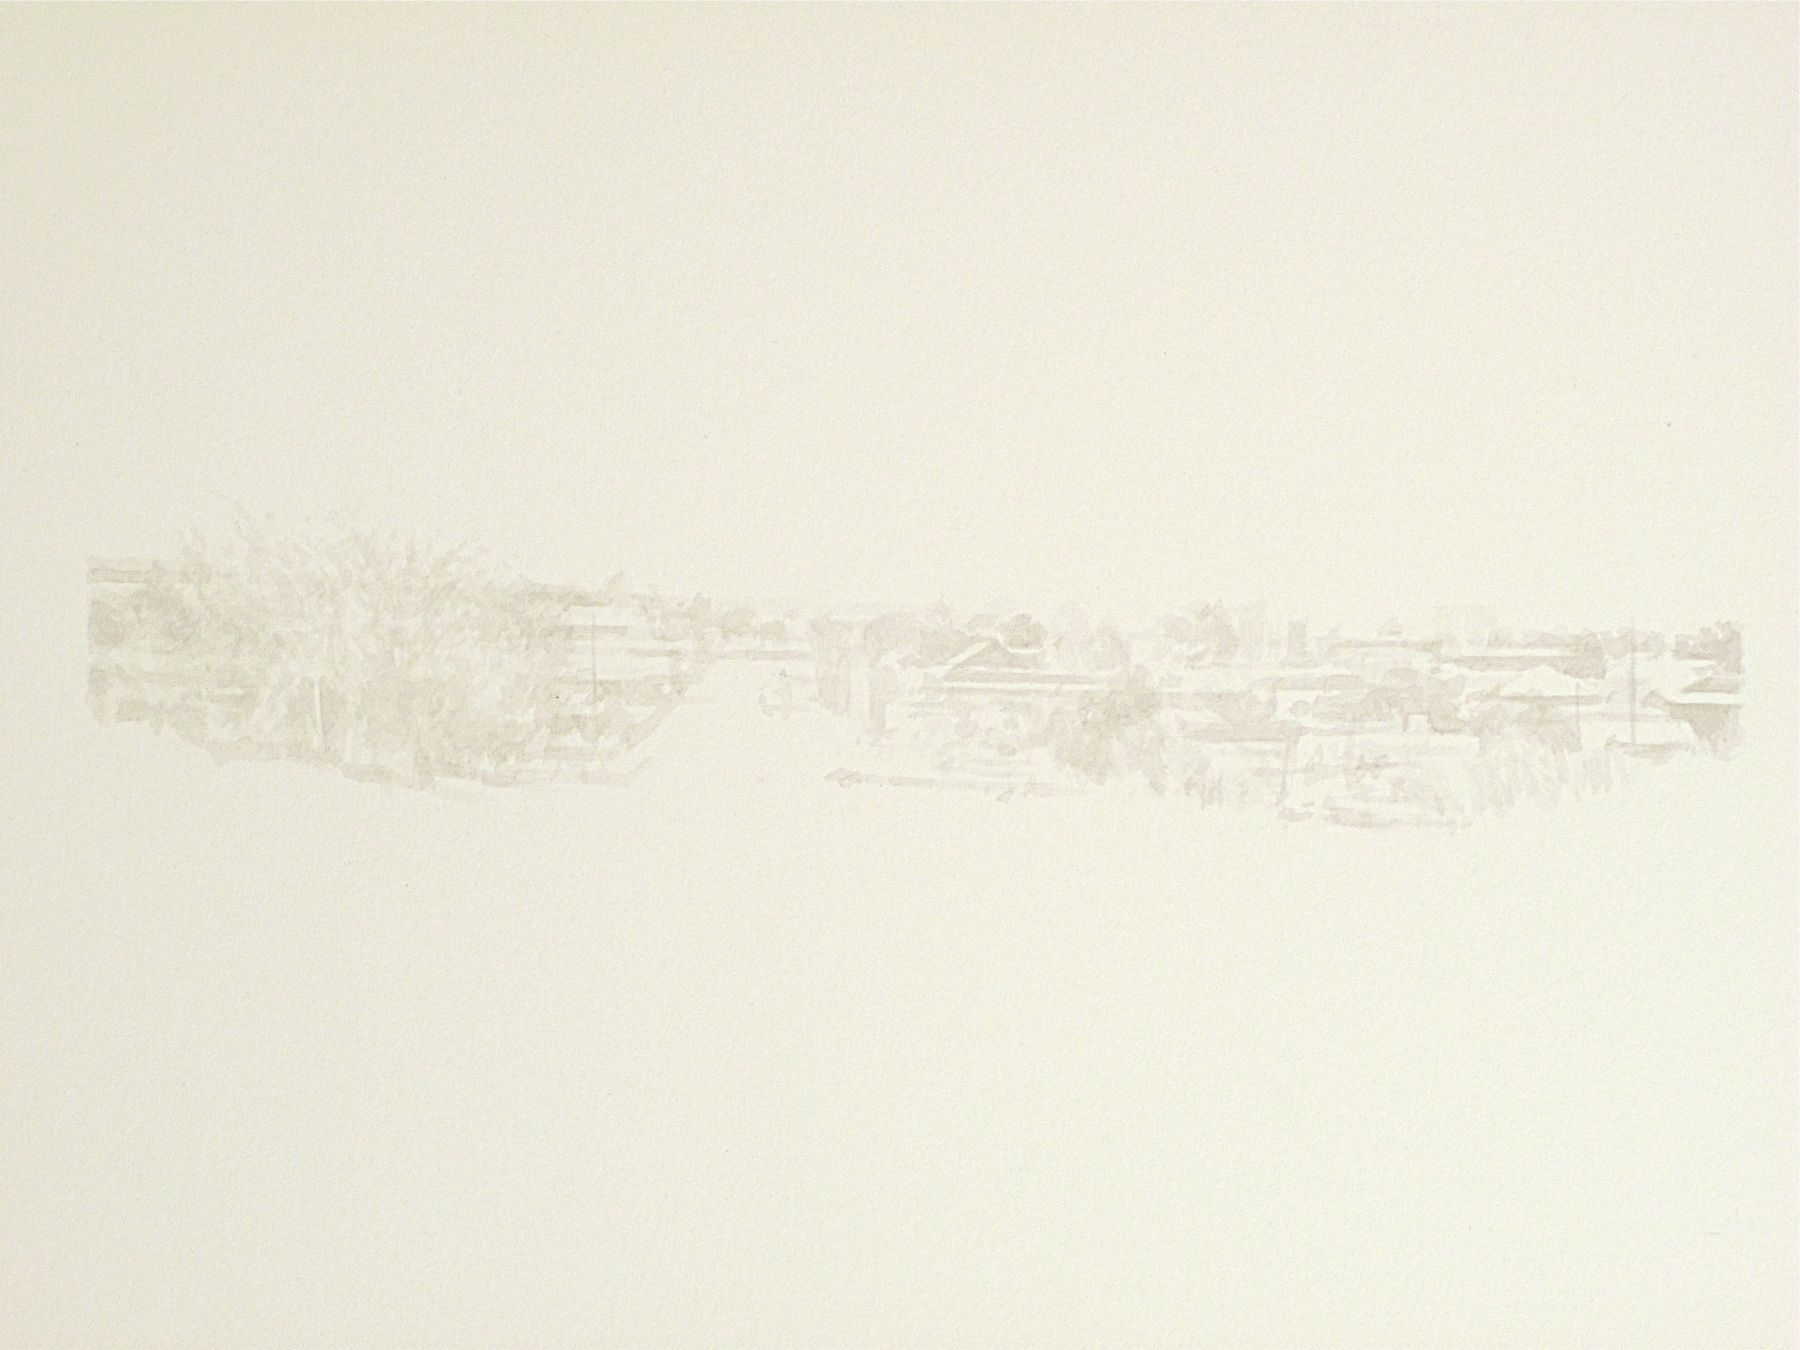 Robert Bauer, Marfa, TX, 2011, brush and ink on paper, 11 x 15 inches